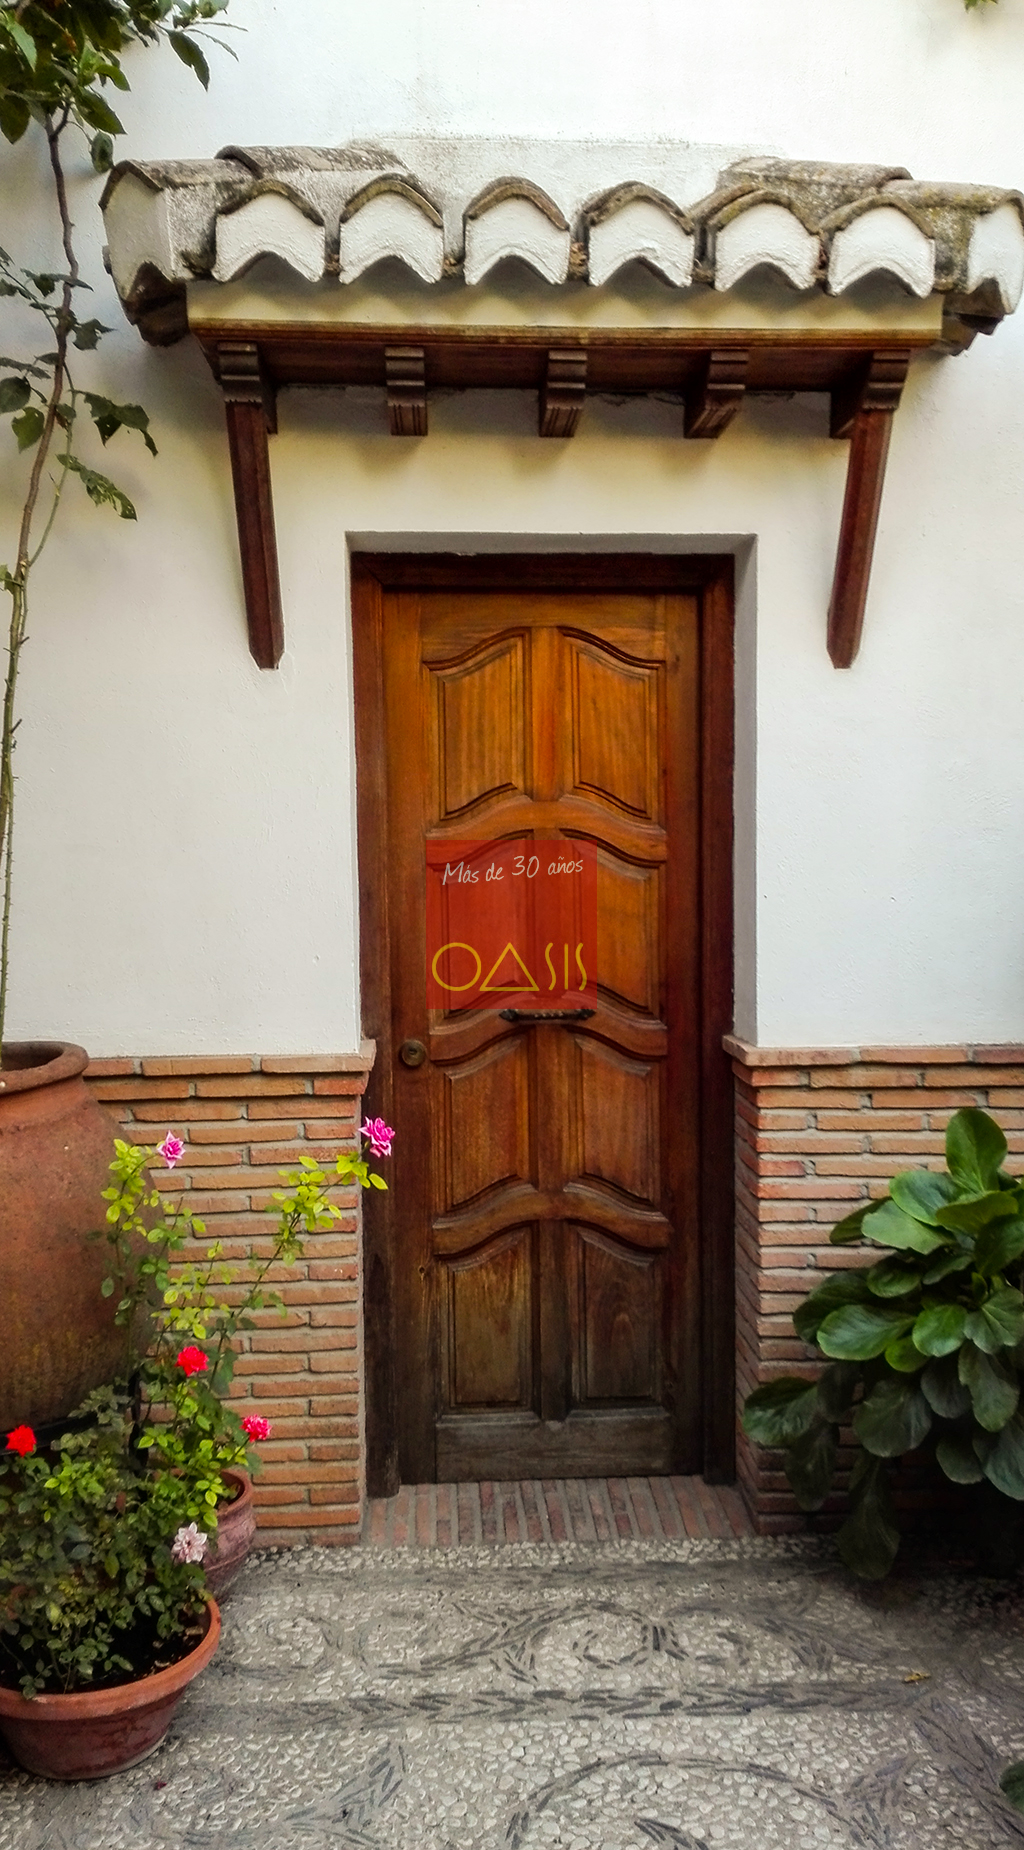 One of the best Carmen in the Albaicin - Oasis Real Estate, 30 years of experience in historical Granada